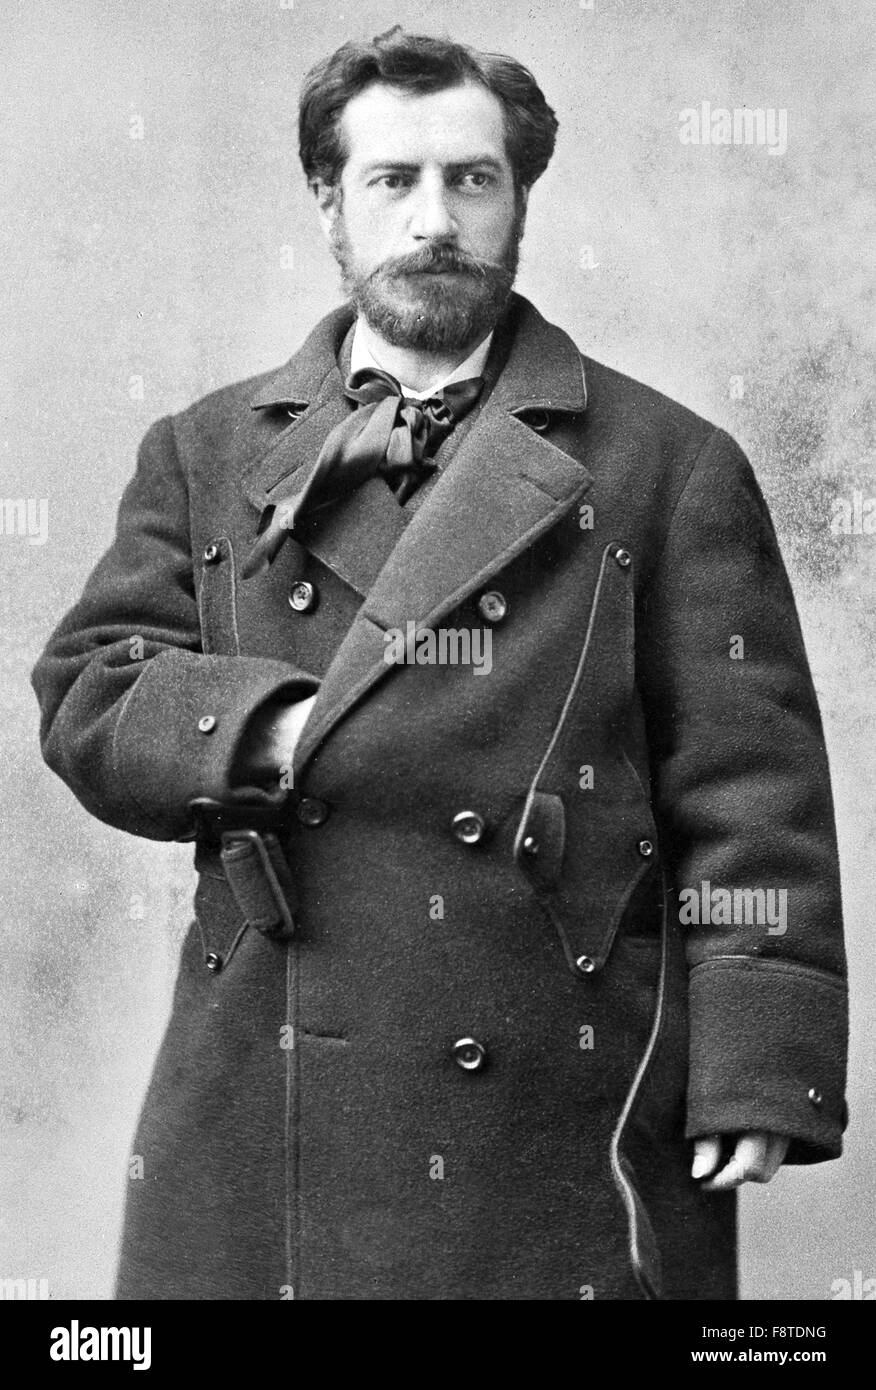 Frédéric Auguste Bartholdi, French sculptor and painter who designed the Statue of Liberty - Stock Image